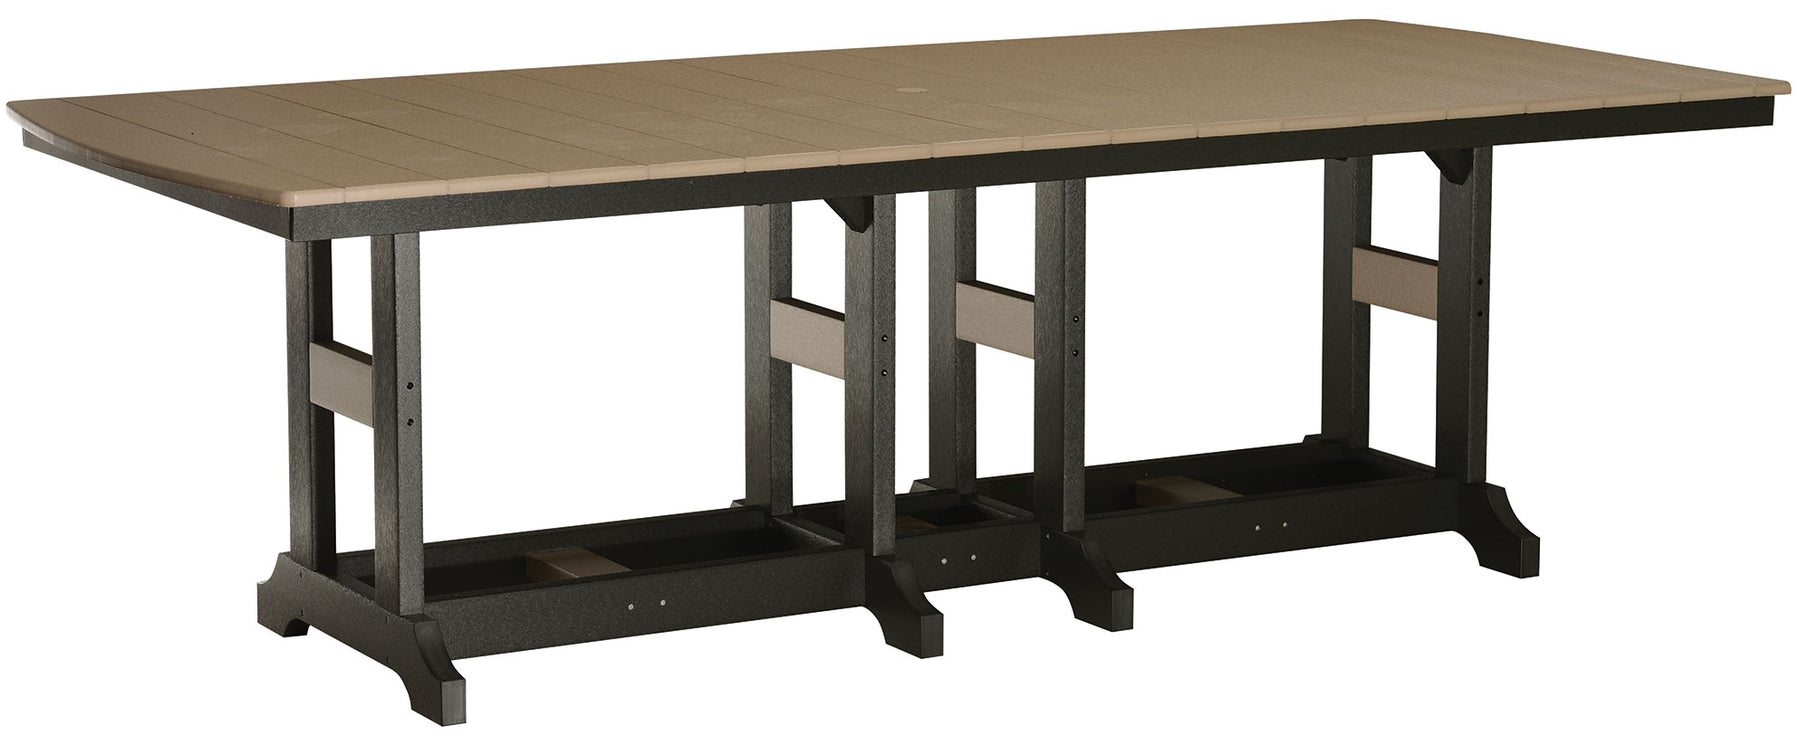 "Berlin Gardens Garden Classic 44"" x 96"" Rectangular Table - Dining Height"